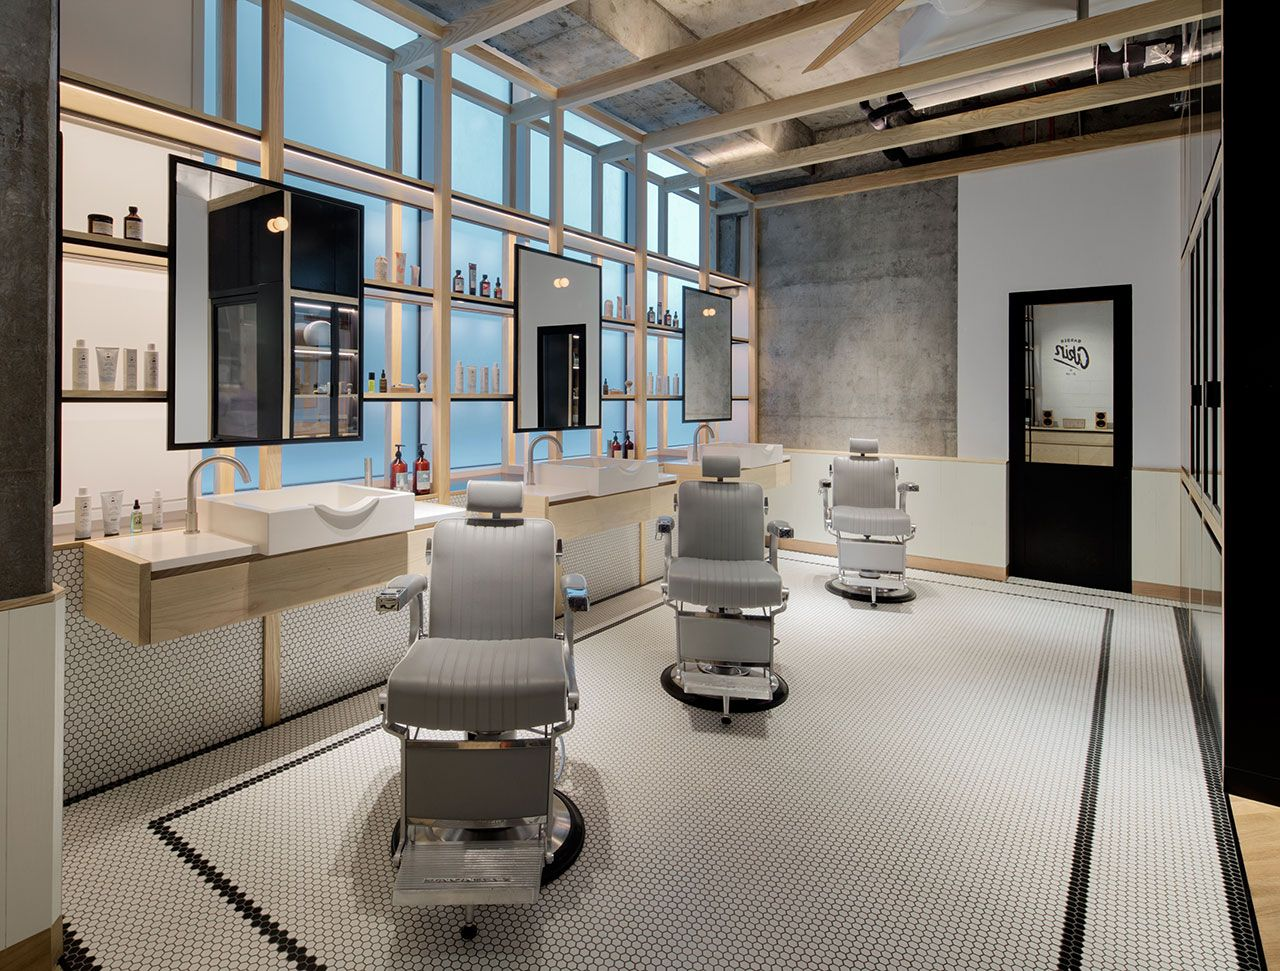 clean cut minimalism and tradition at akin barber shop in dubai - Barbershop Design Ideas